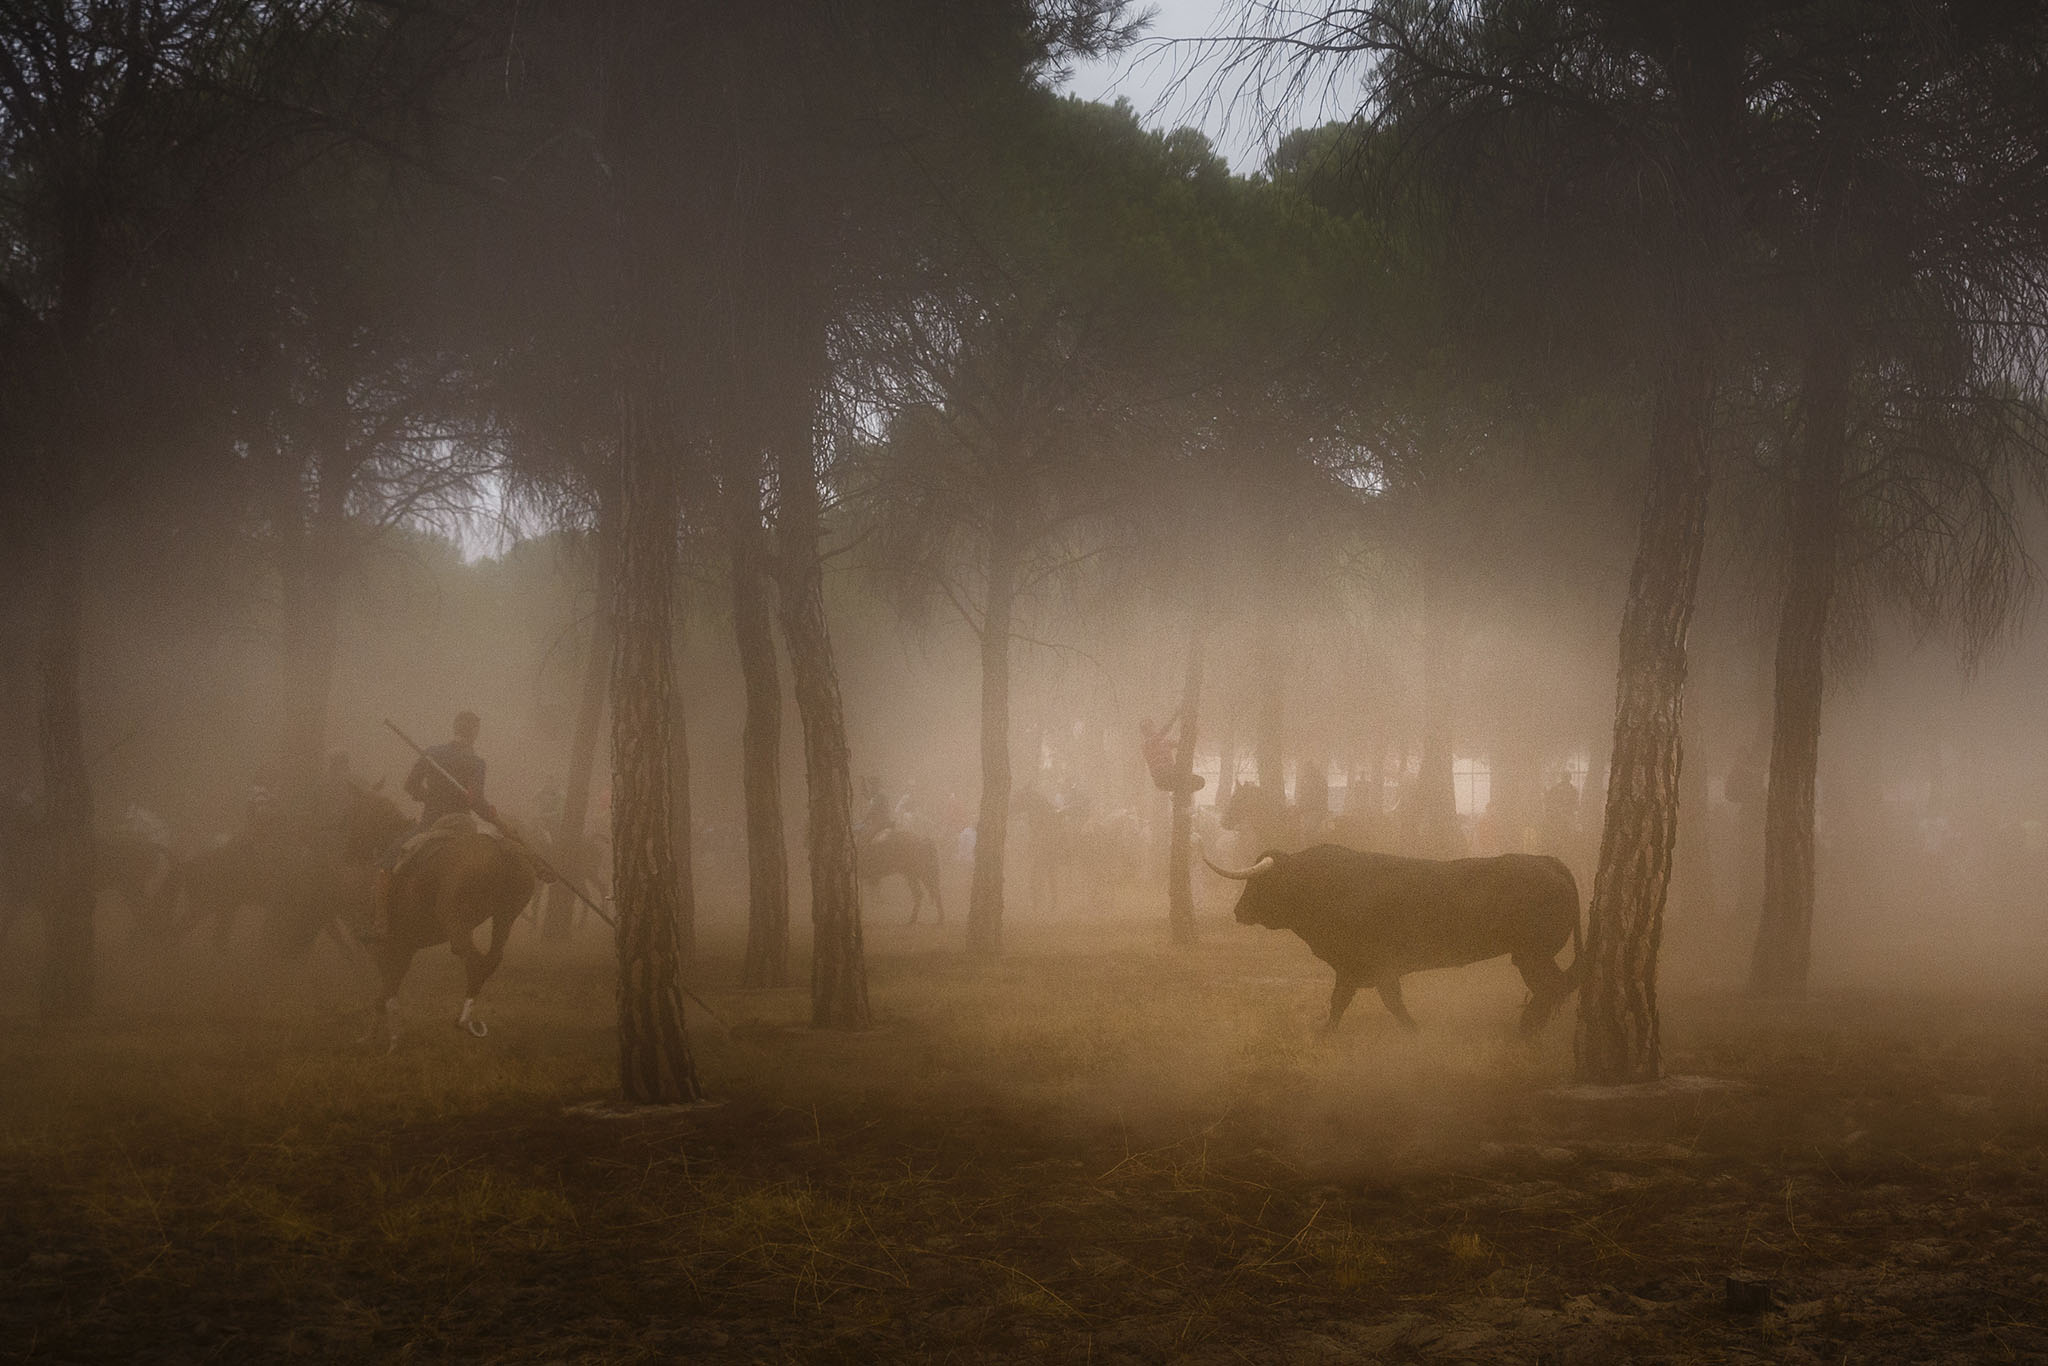 Men on horseback ride trough a pine tree forest chased by a a brave bull in Tordesillas, Spain, Tuesday, Sept. 13, 2016 . Men on horseback and on foot traditionally have chased the bull and speared it in front of thousands of onlookers in what became known as one of Spain's goriest spectacles, but amid increasing protests by animal rights activists the regional government last year banned the killing of bulls at town festivals, though traditional bullfights were not affected. (AP Photo/Daniel Ochoa de Olza)